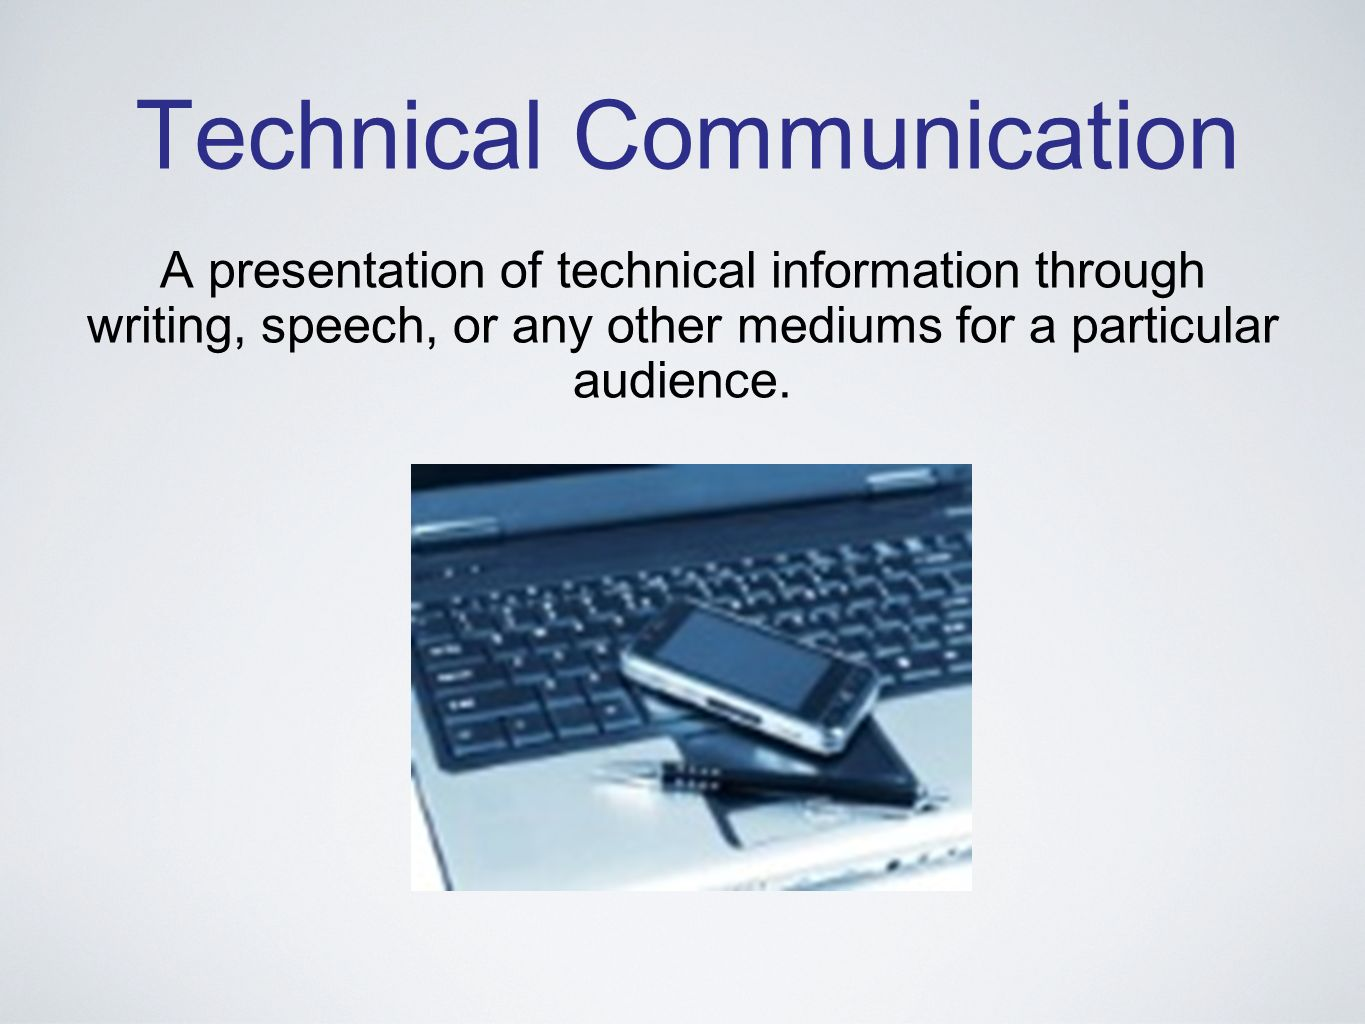 Technical Communication A presentation of technical information through writing, speech, or any other mediums for a particular audience.